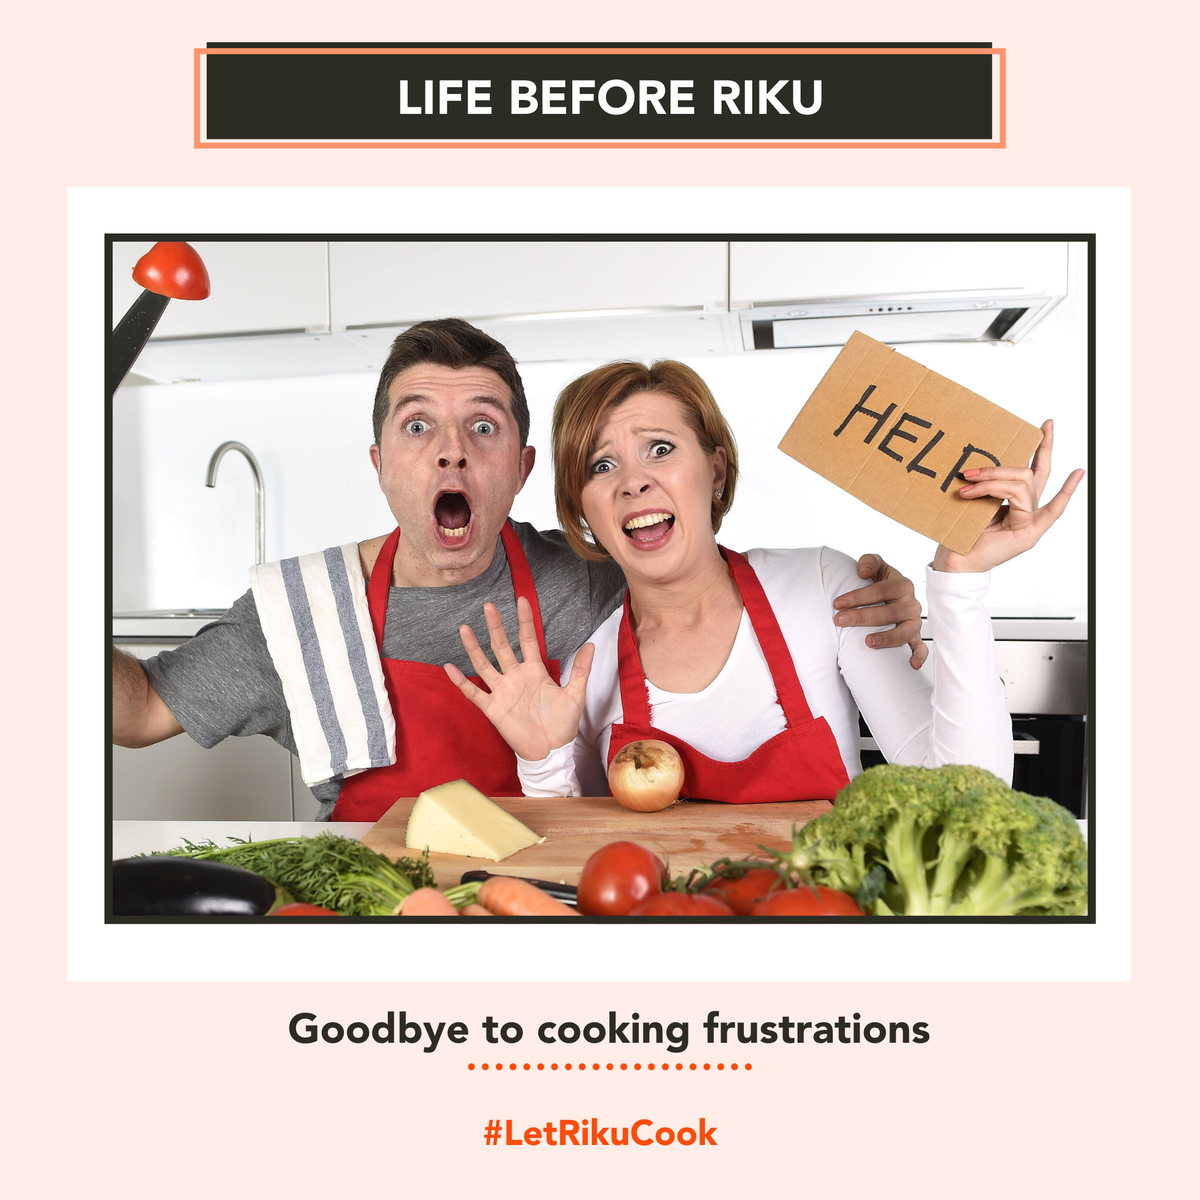 This is what the Riku transformations looks like! Introducing the world's first automatic rice and curry maker!  #LifeWithRiku #FutureofCooking #KitchenTechnology #Technology #Cooking #CookingatHome #Gadgetspic.twitter.com/4OQATeJ3AK